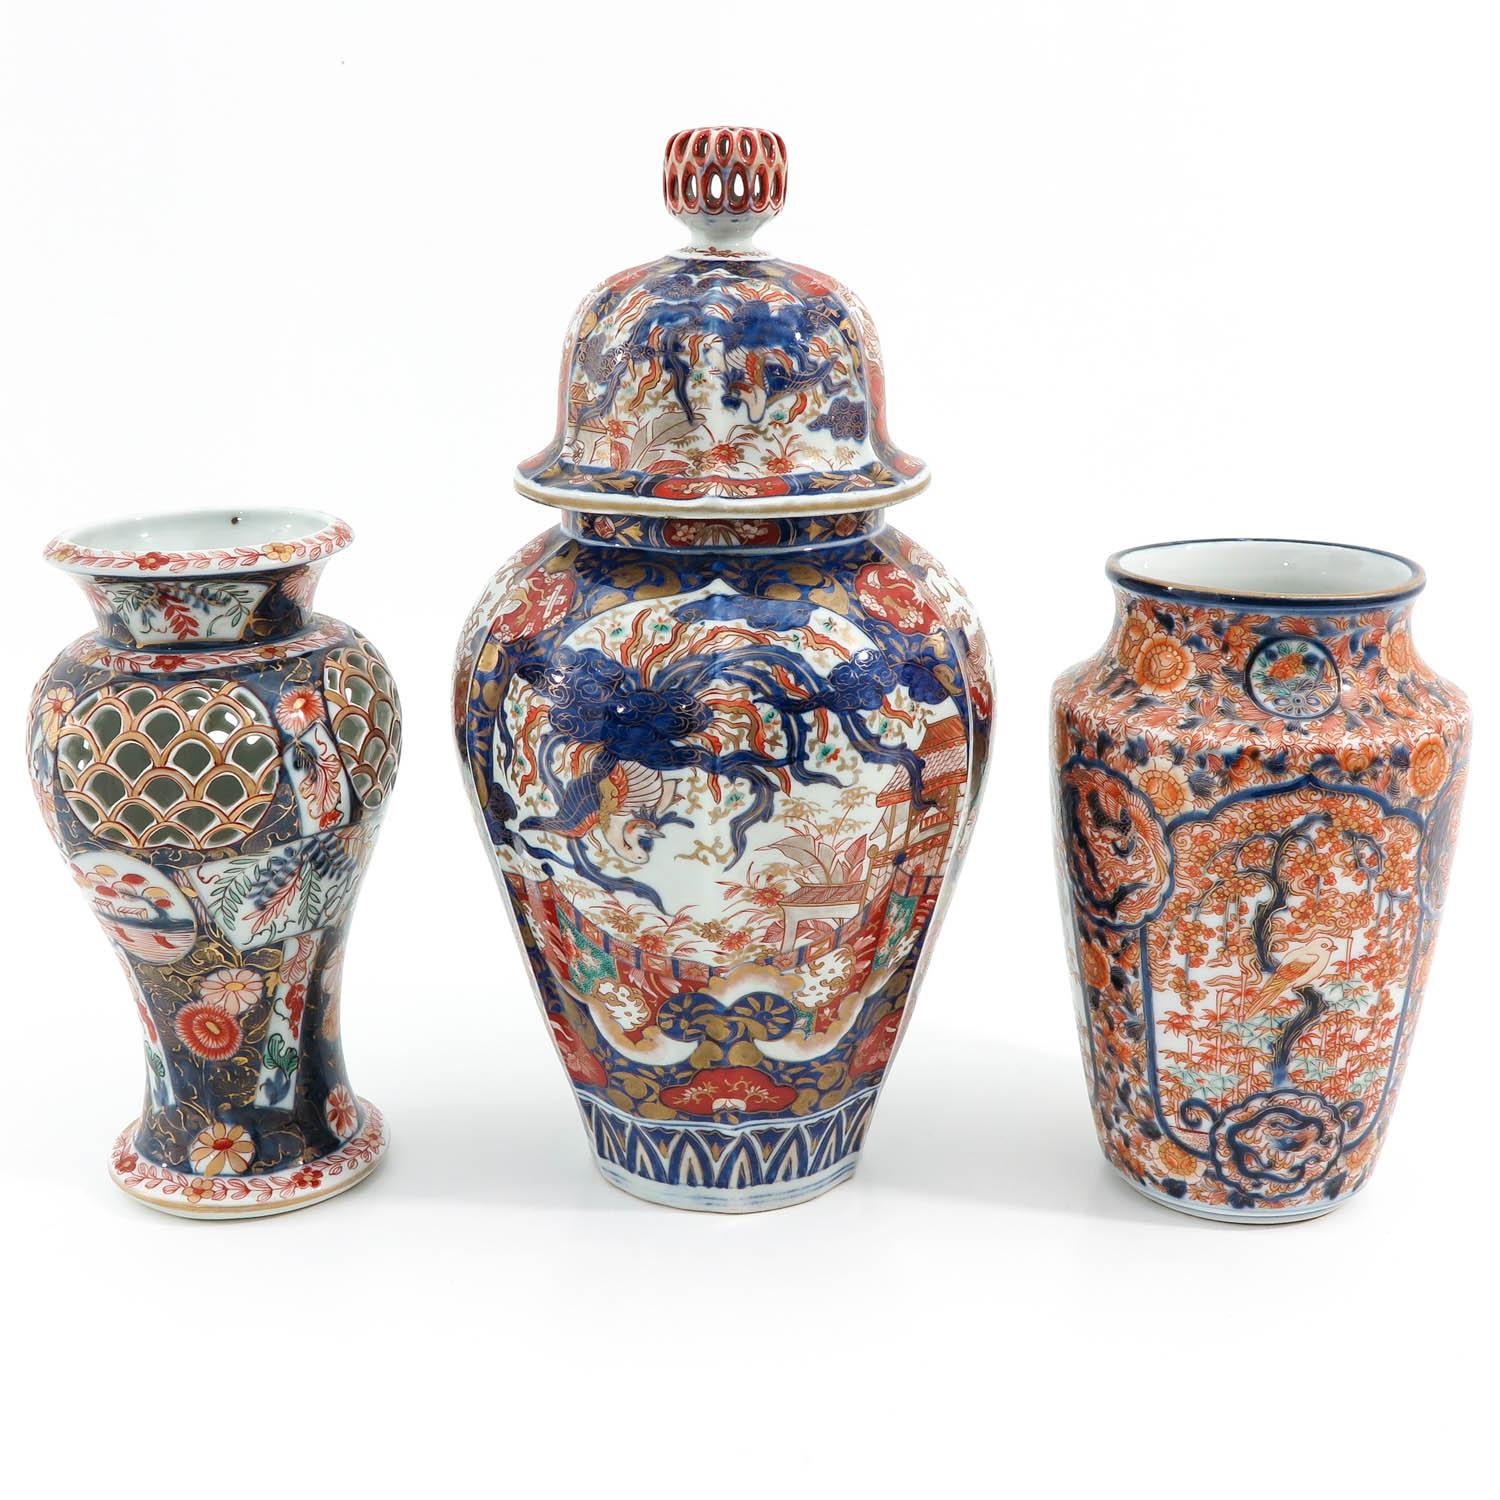 A Collection of 3 Imari Vases